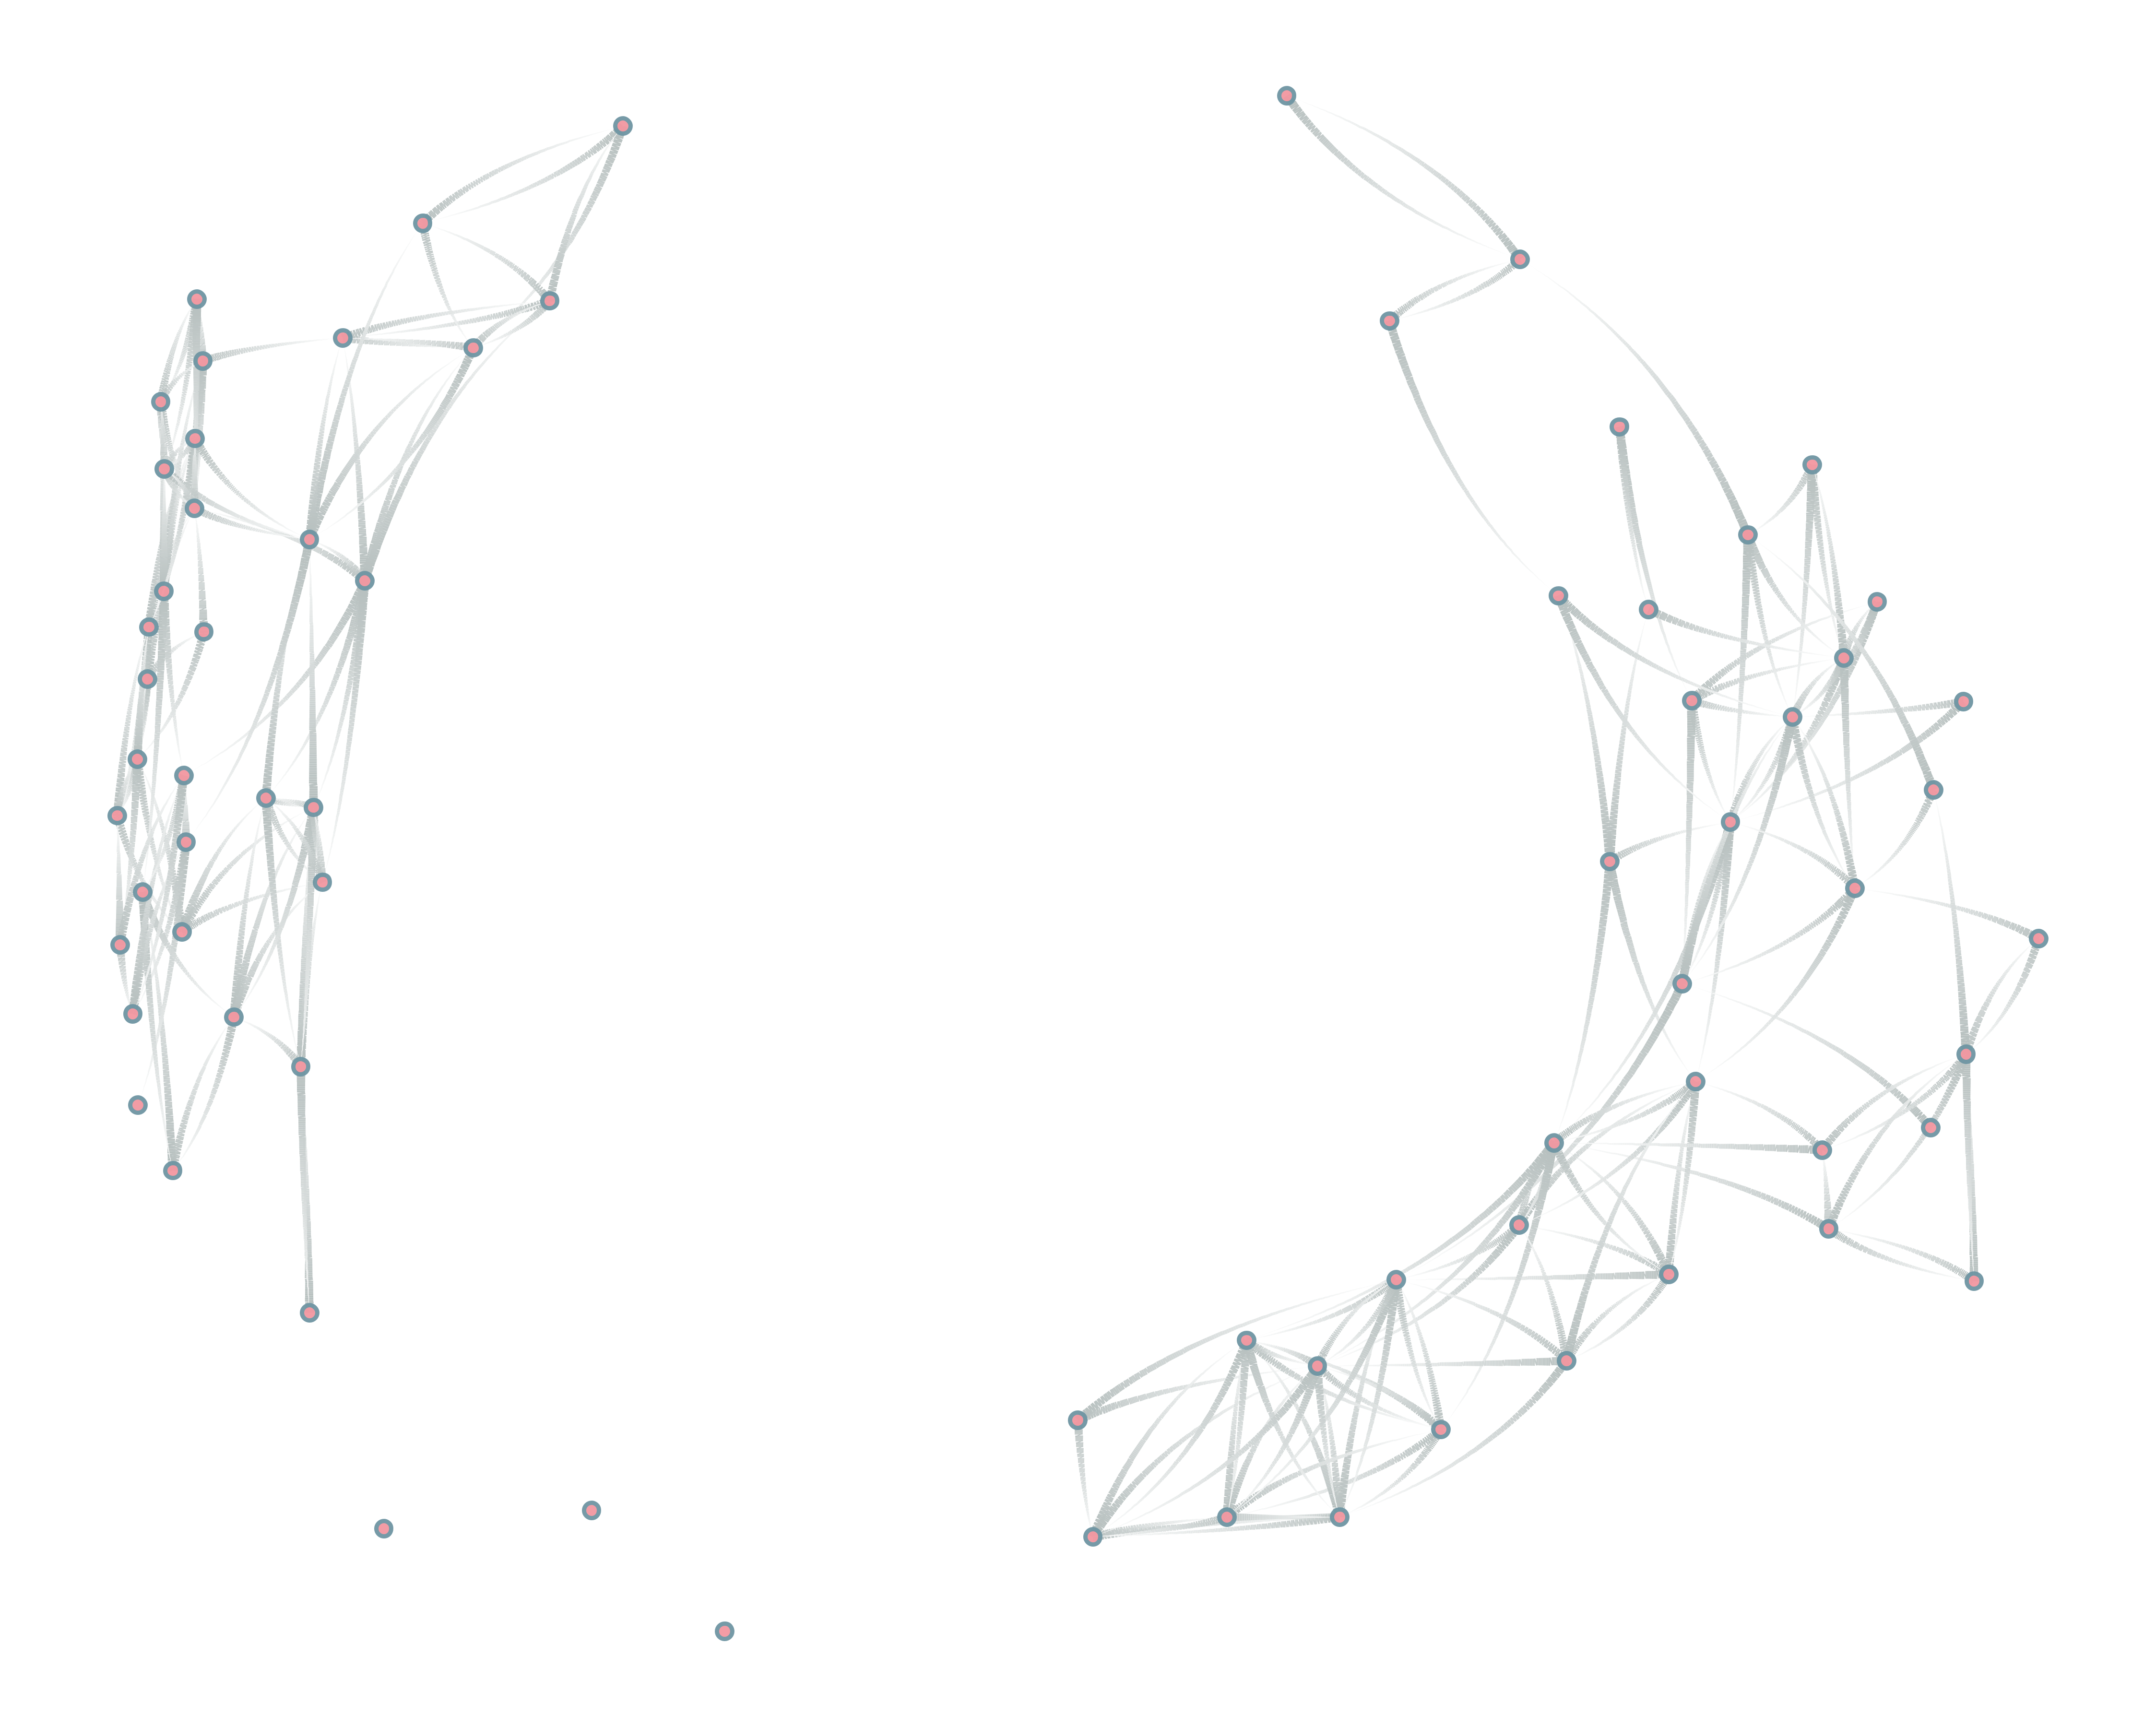 creating network diagrams in plotly from julia  u00ab bad hessian